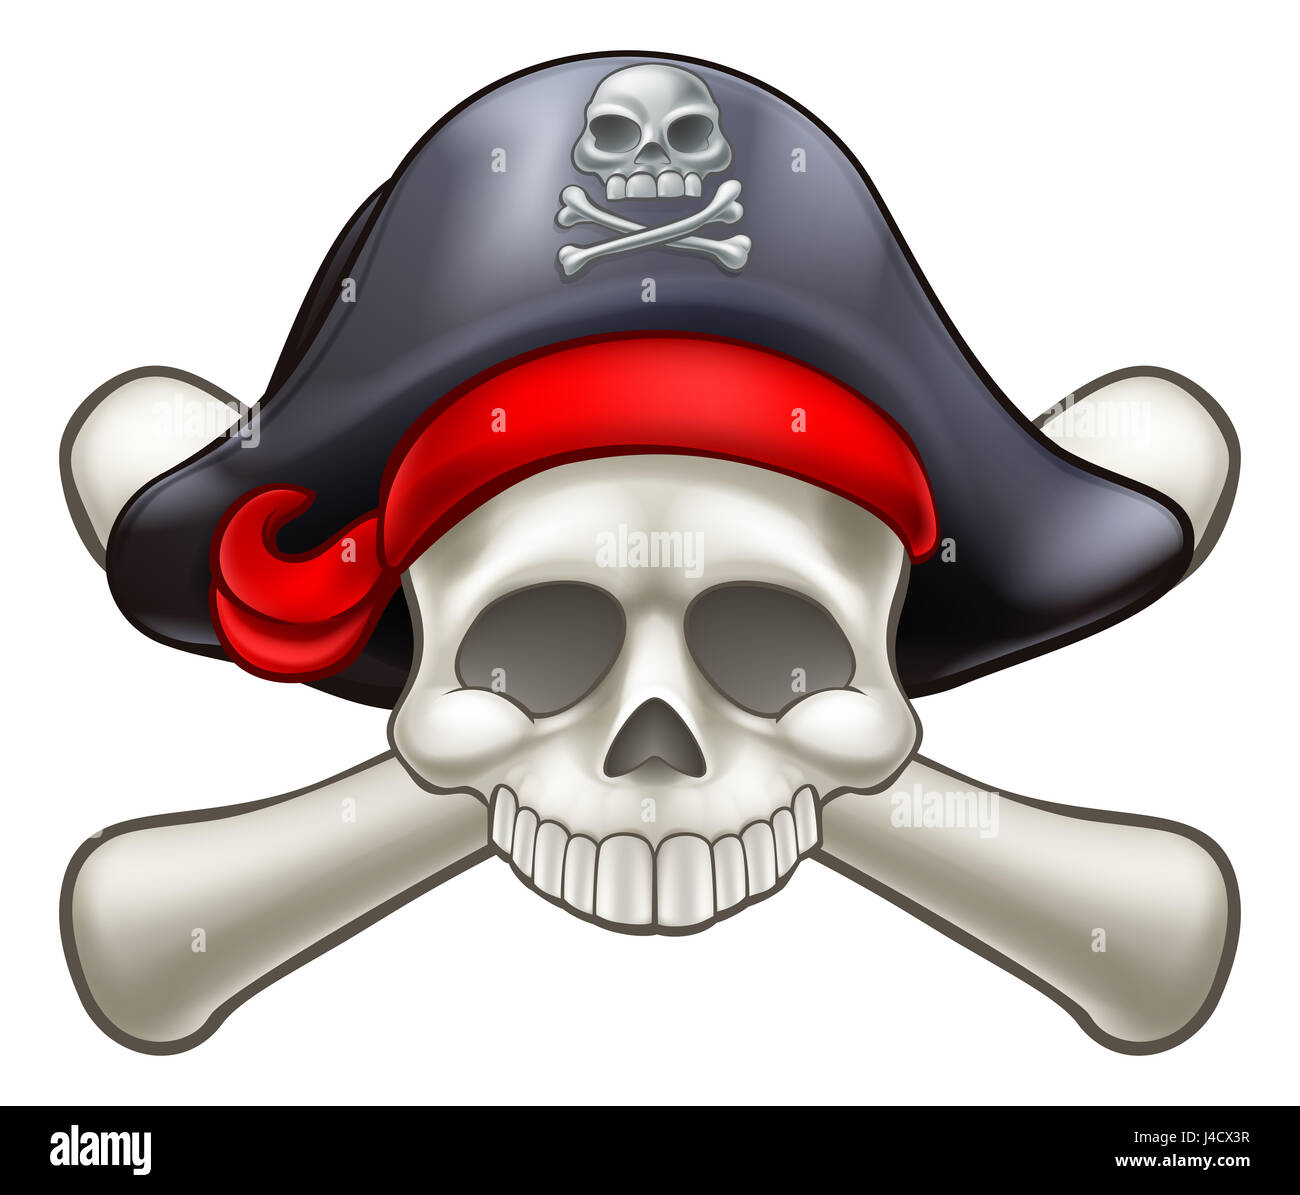 Skull and crossbones Pirate Jolly Roger - Stock Image